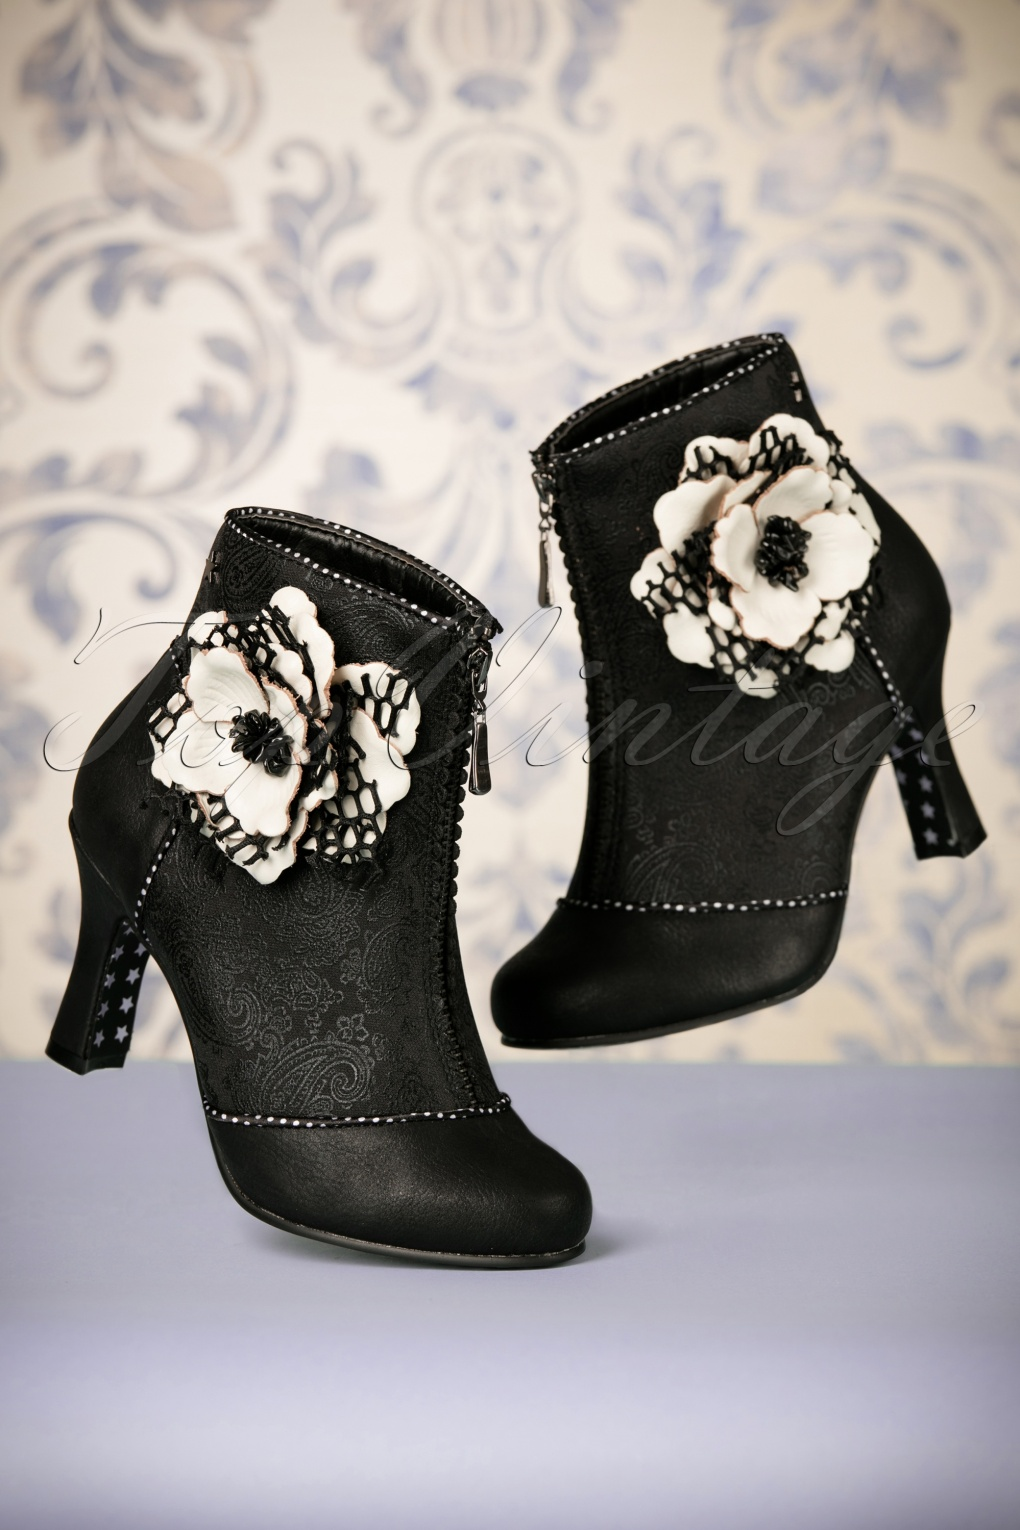 Retro Boots, Granny Boots, 70s Boots 40s Christobel Booties in Black £73.36 AT vintagedancer.com